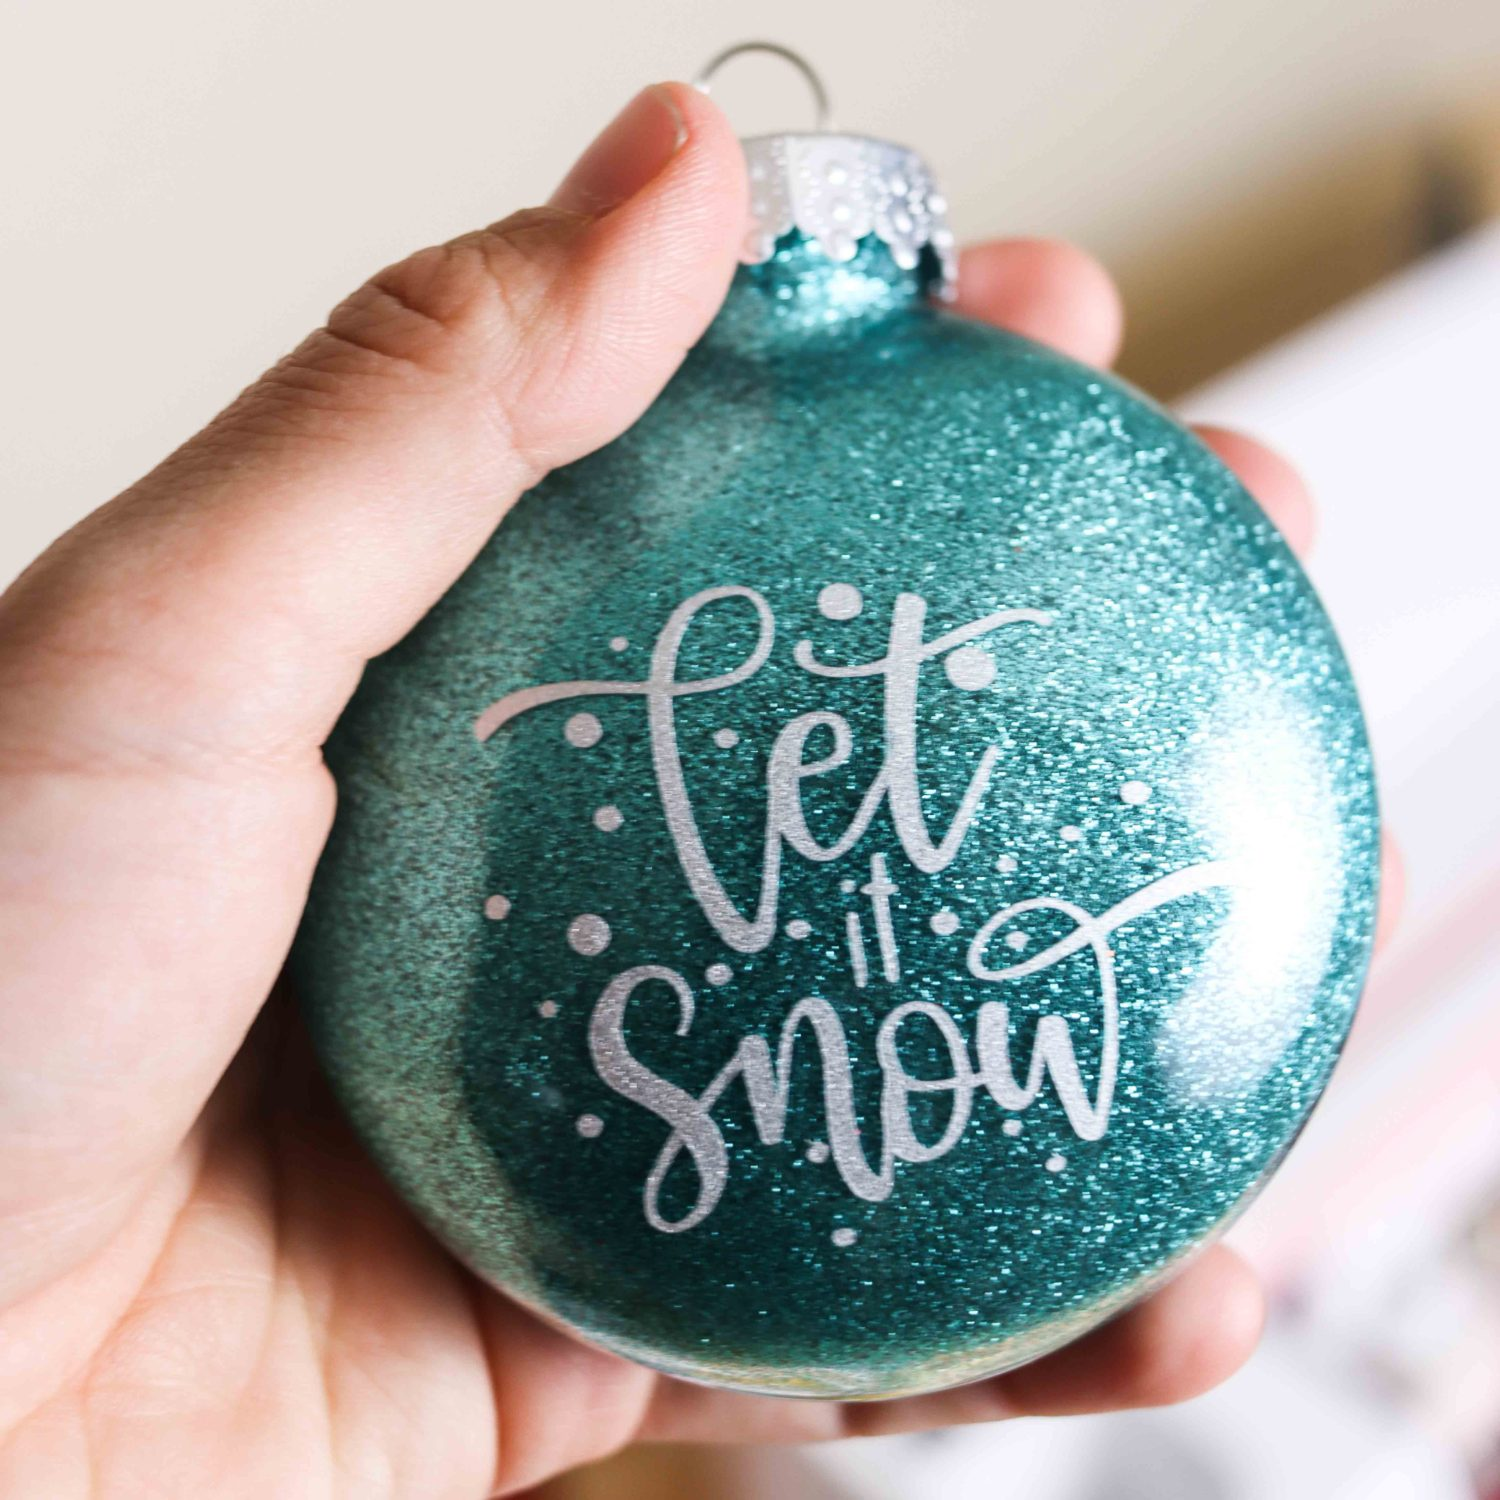 let it snow Christmas ornament made with Cricut